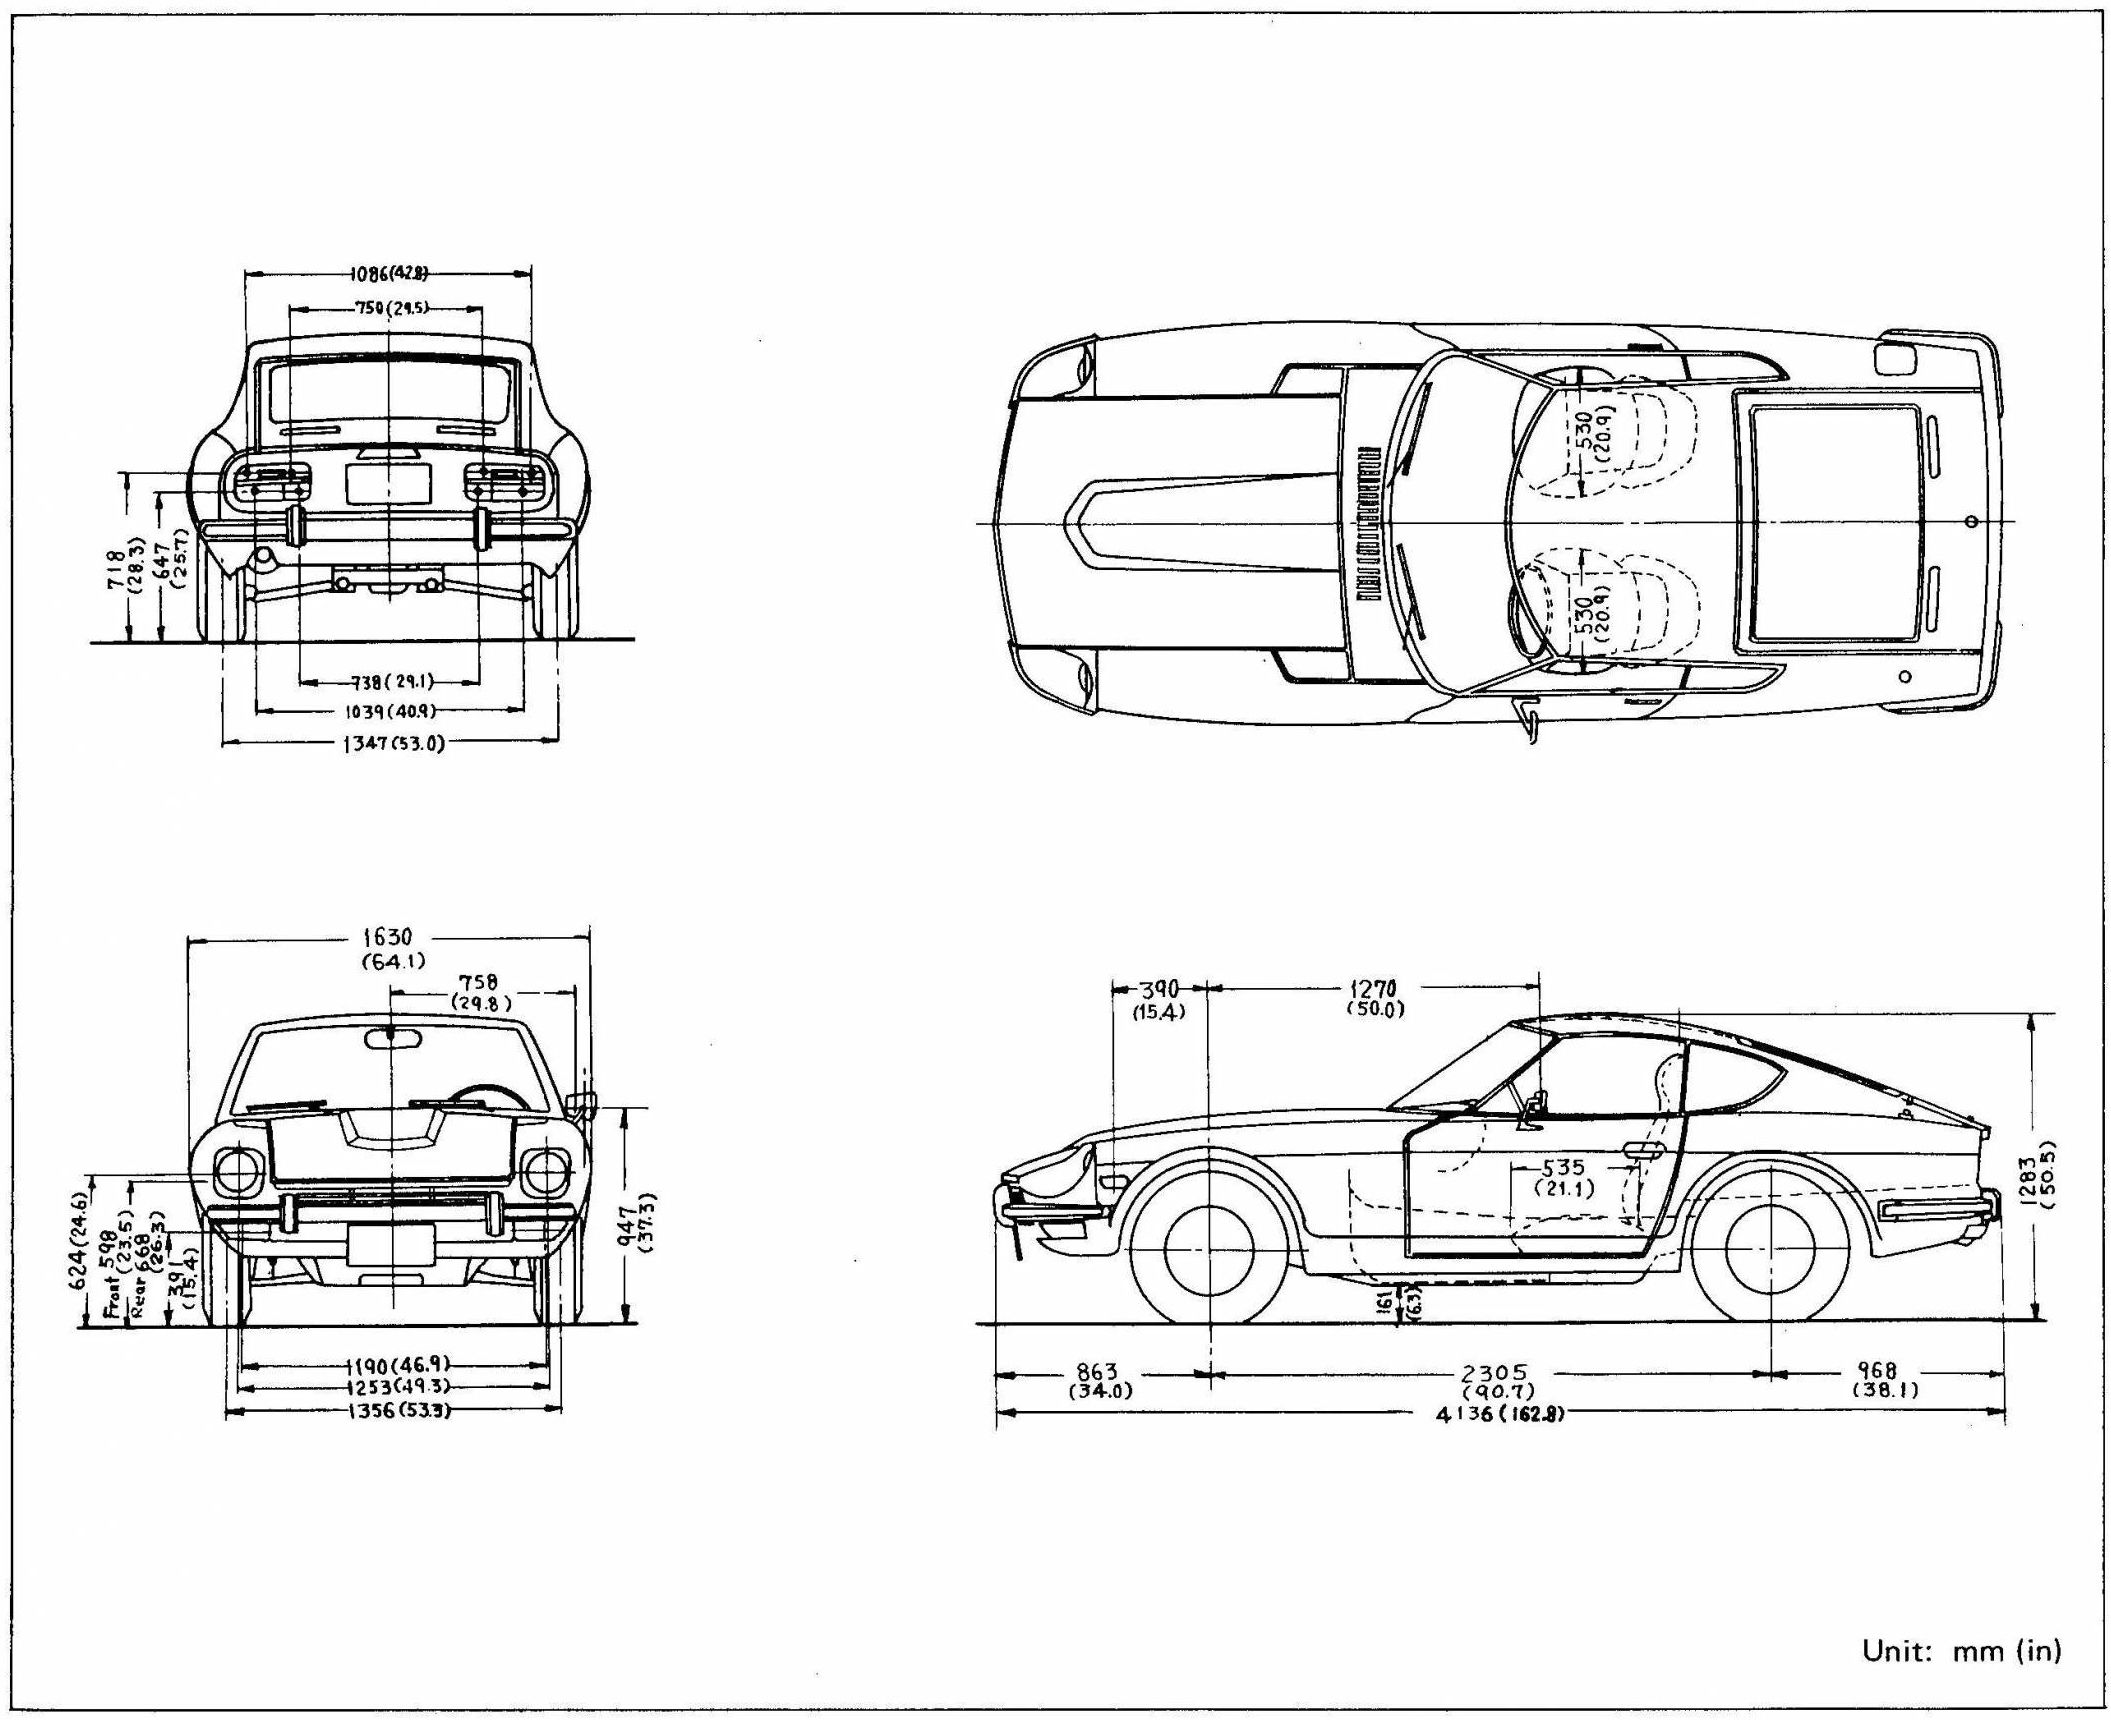 Datsun 280z 1976 Blueprint Download Free Blueprint For 3d Modeling